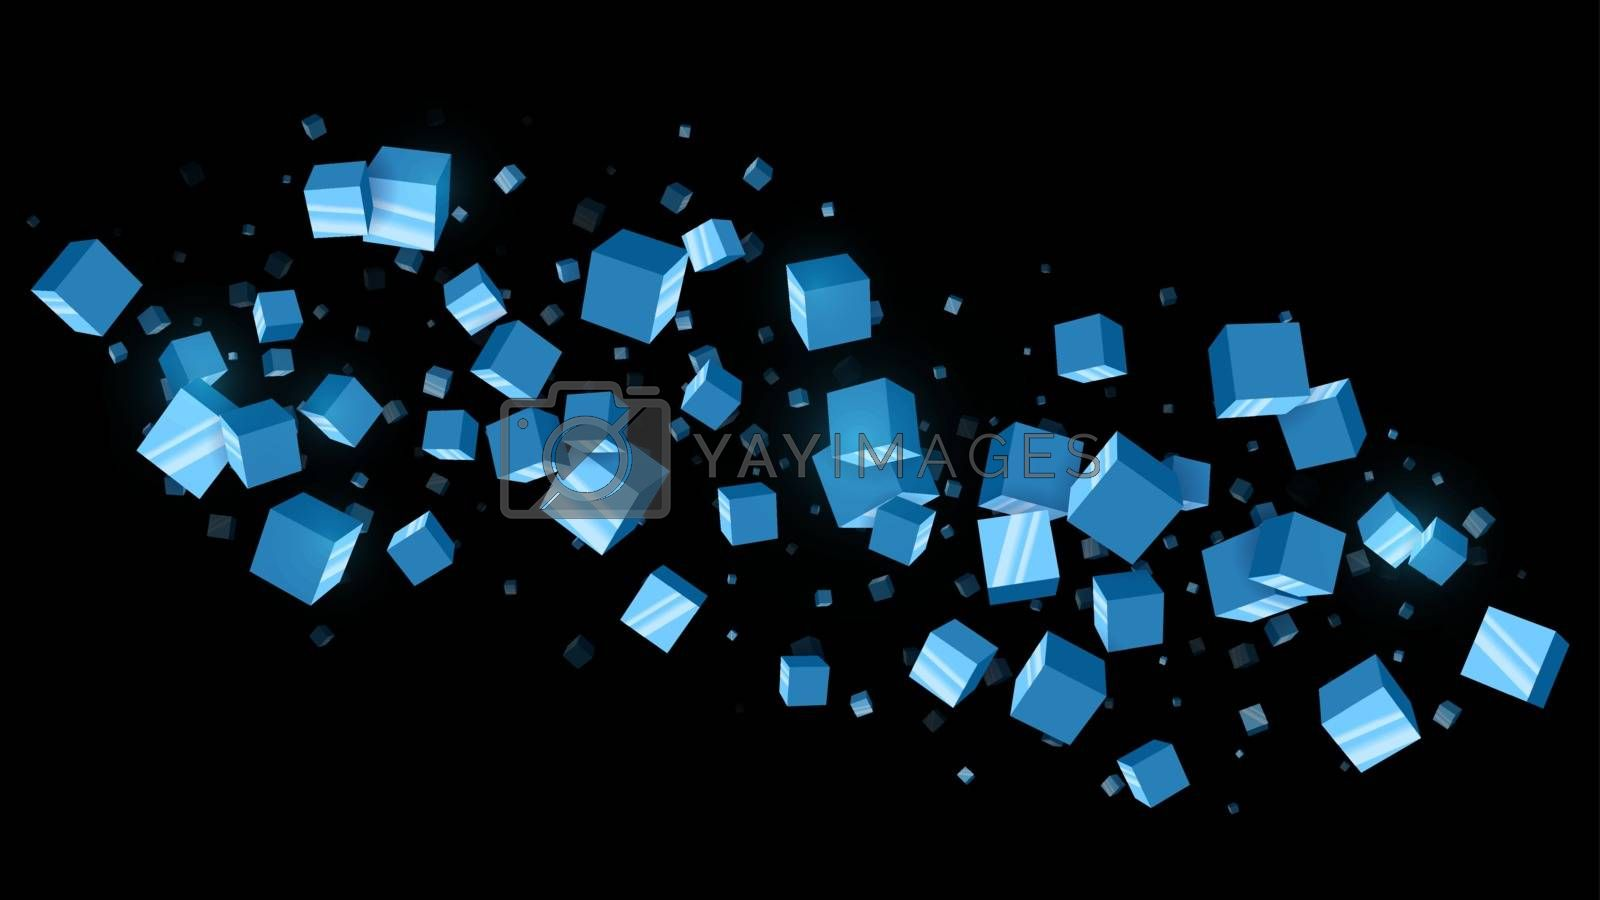 3d abstract futuristic black background with blue reflective cubes flying in space